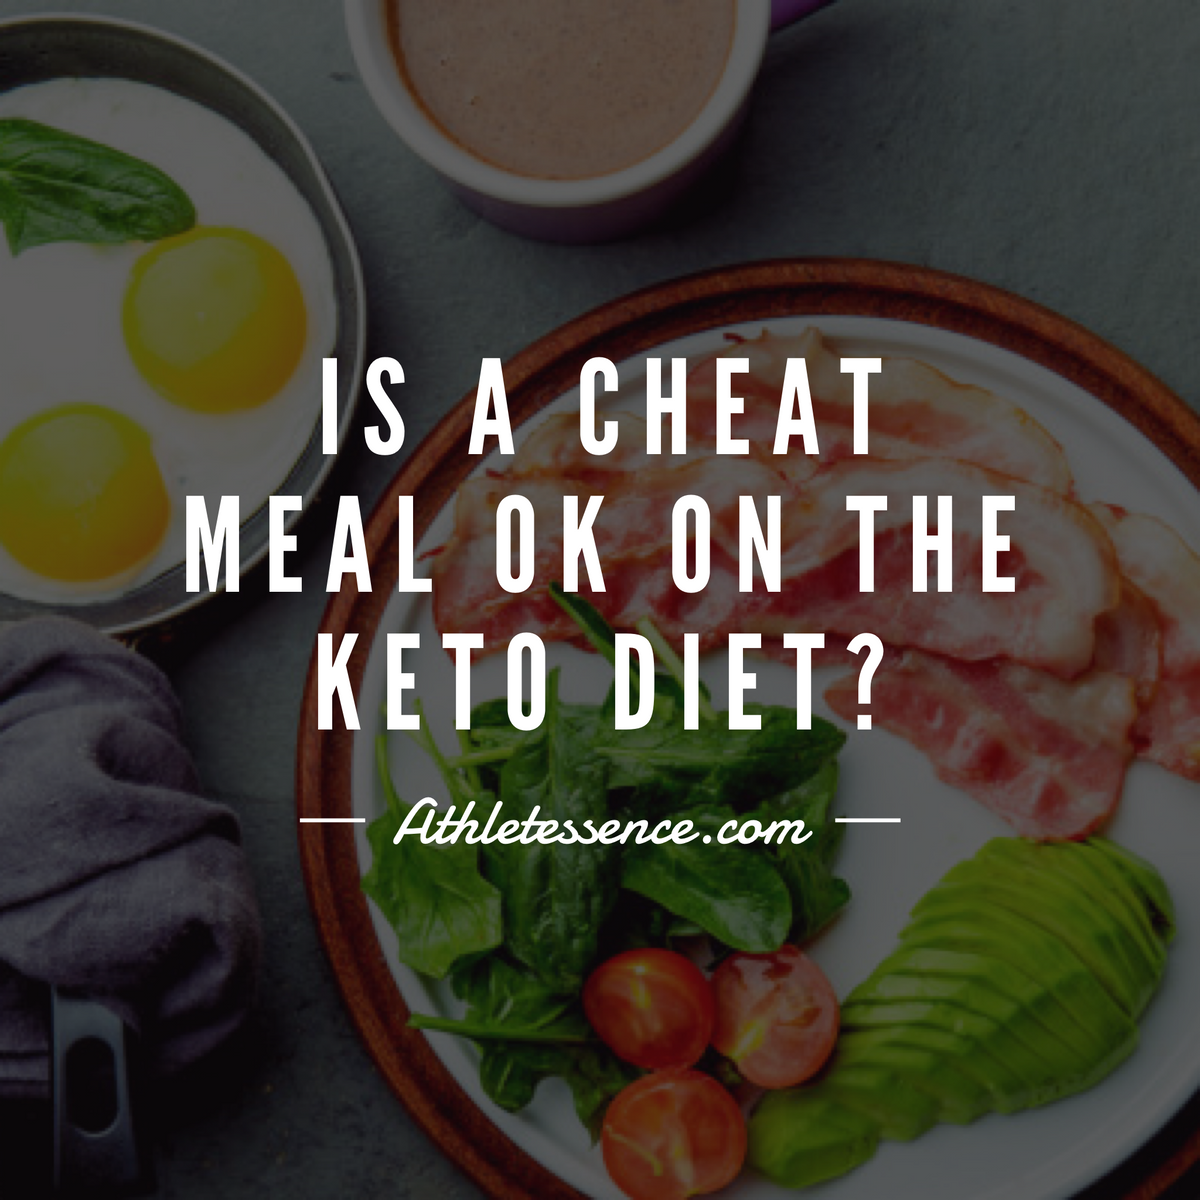 If You're On The Keto Diet, You Should Probably Skip That Cheat Day